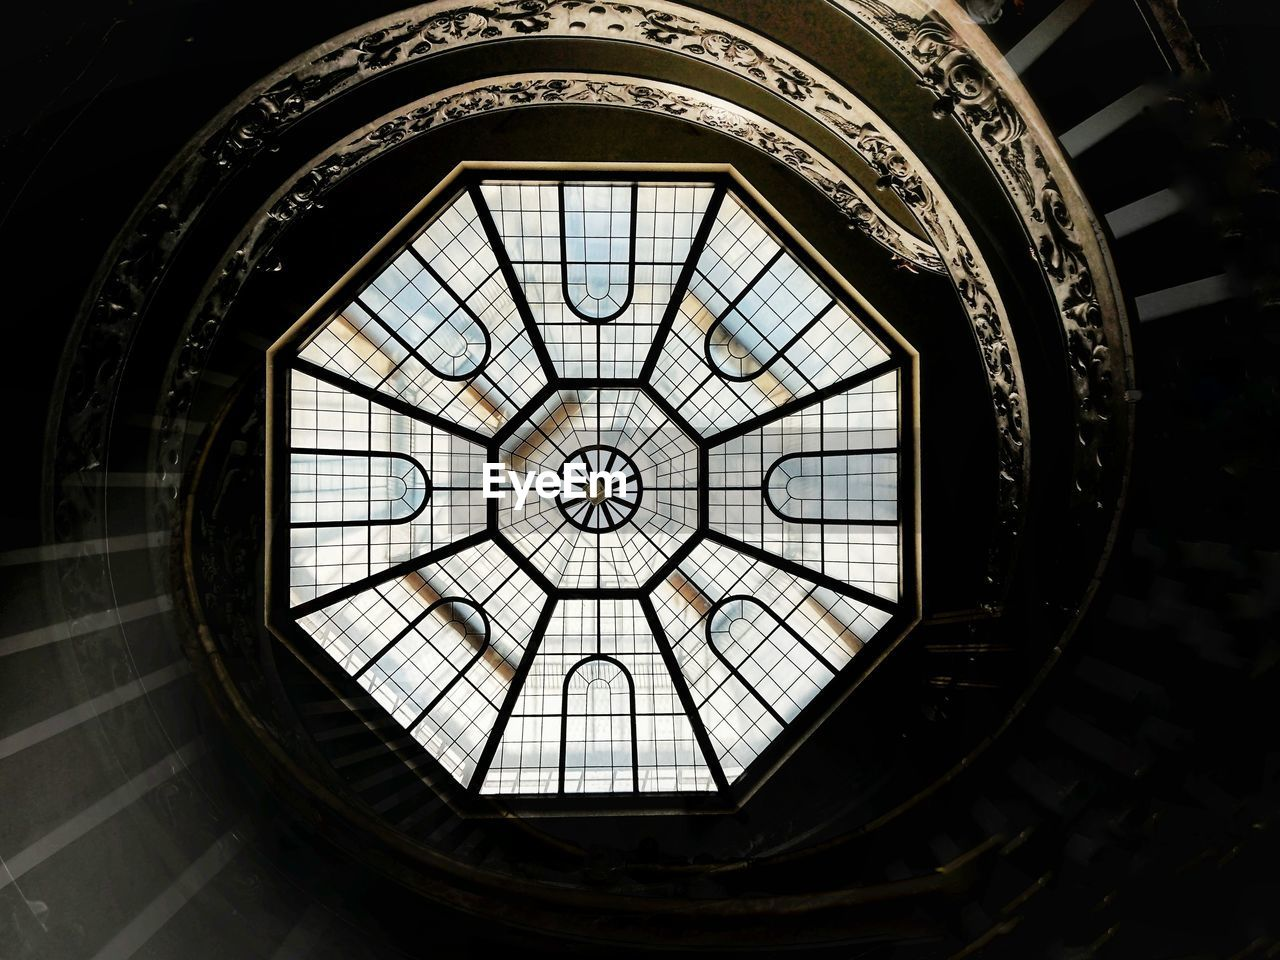 LOW ANGLE VIEW OF SKYLIGHT IN GLASS BUILDING